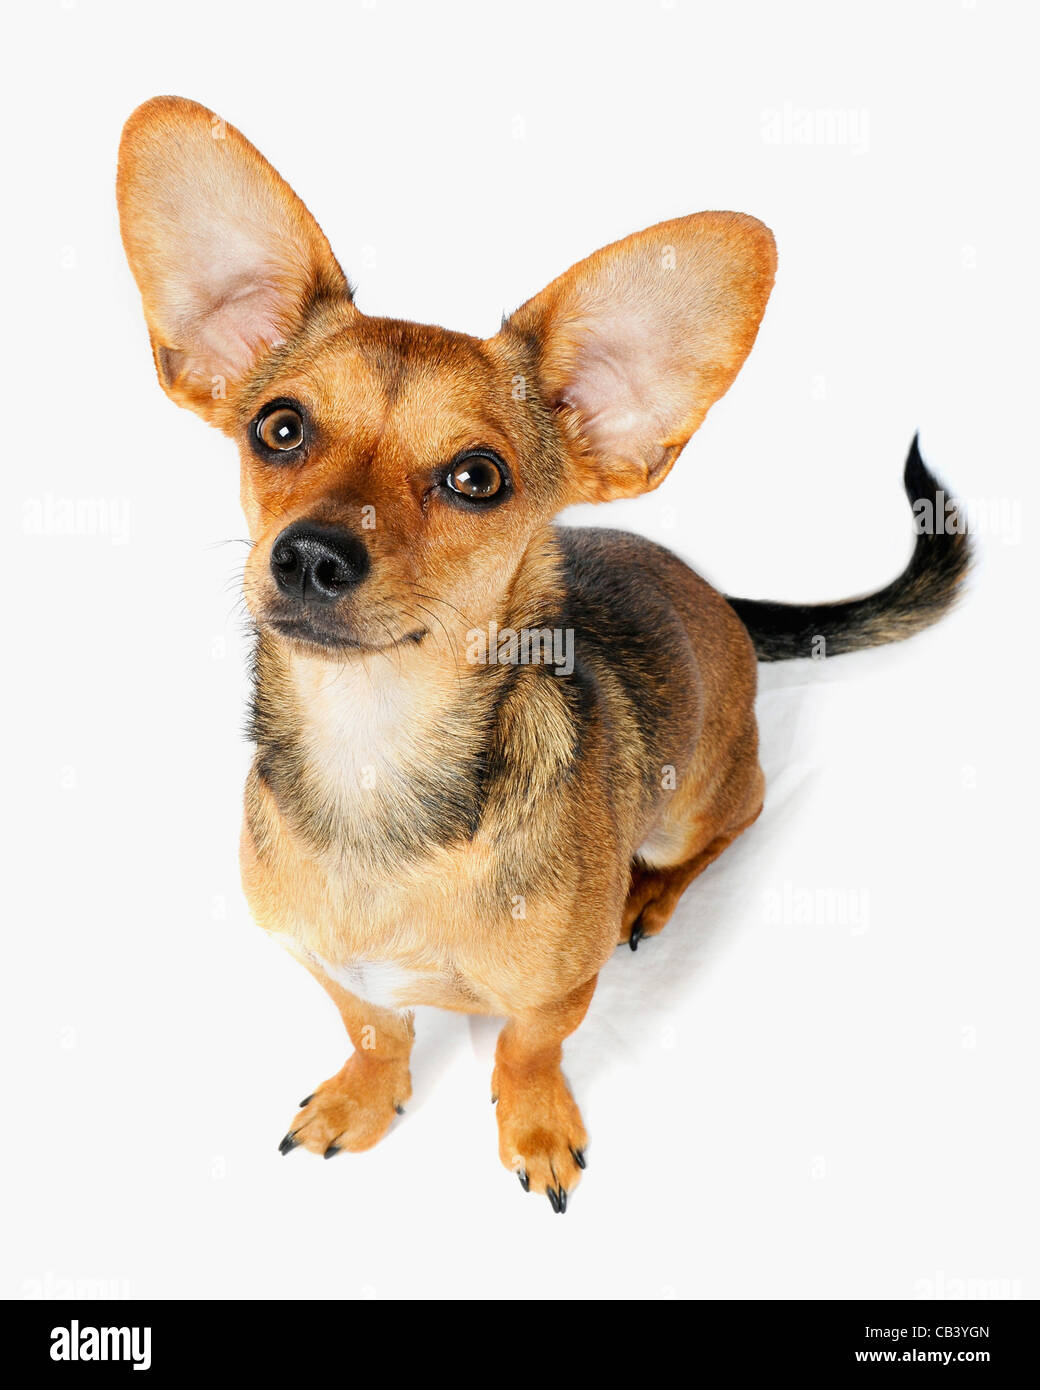 High Angle View Of A Chiweenie Dog Crossbreed Chihuahua And Dachshund